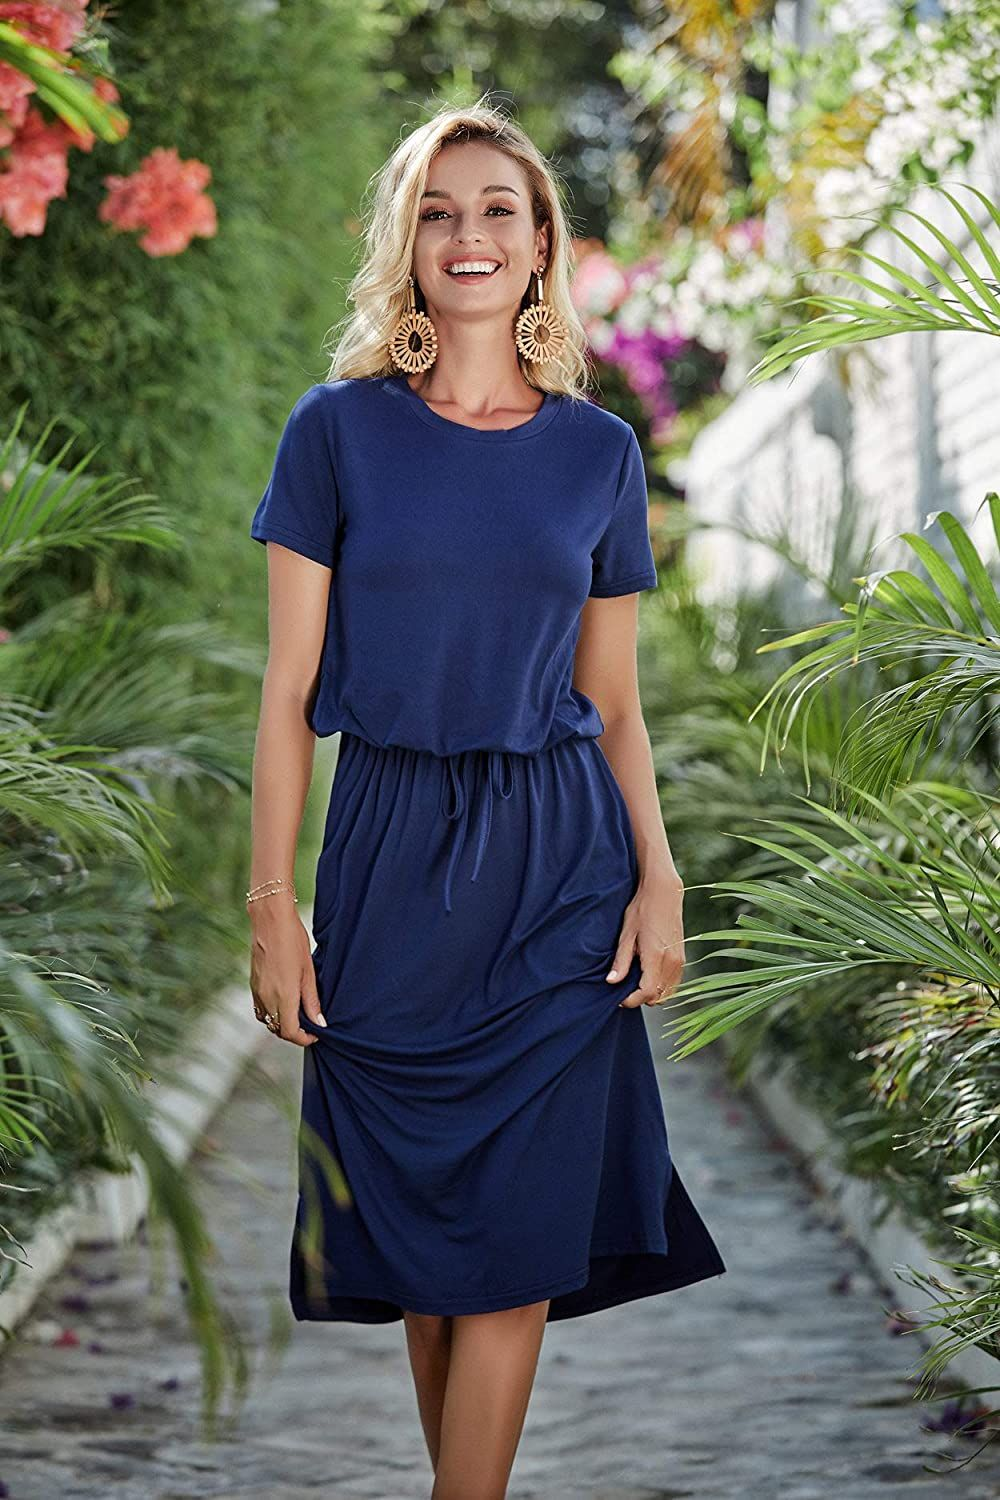 Simier Fariry Women S Modest Work Casual Midi Dress With Pockets At Amazon Women S Clothing Store Midi Dress Casual Casual Summer Dresses Dresses Casual Fall [ 1500 x 1000 Pixel ]